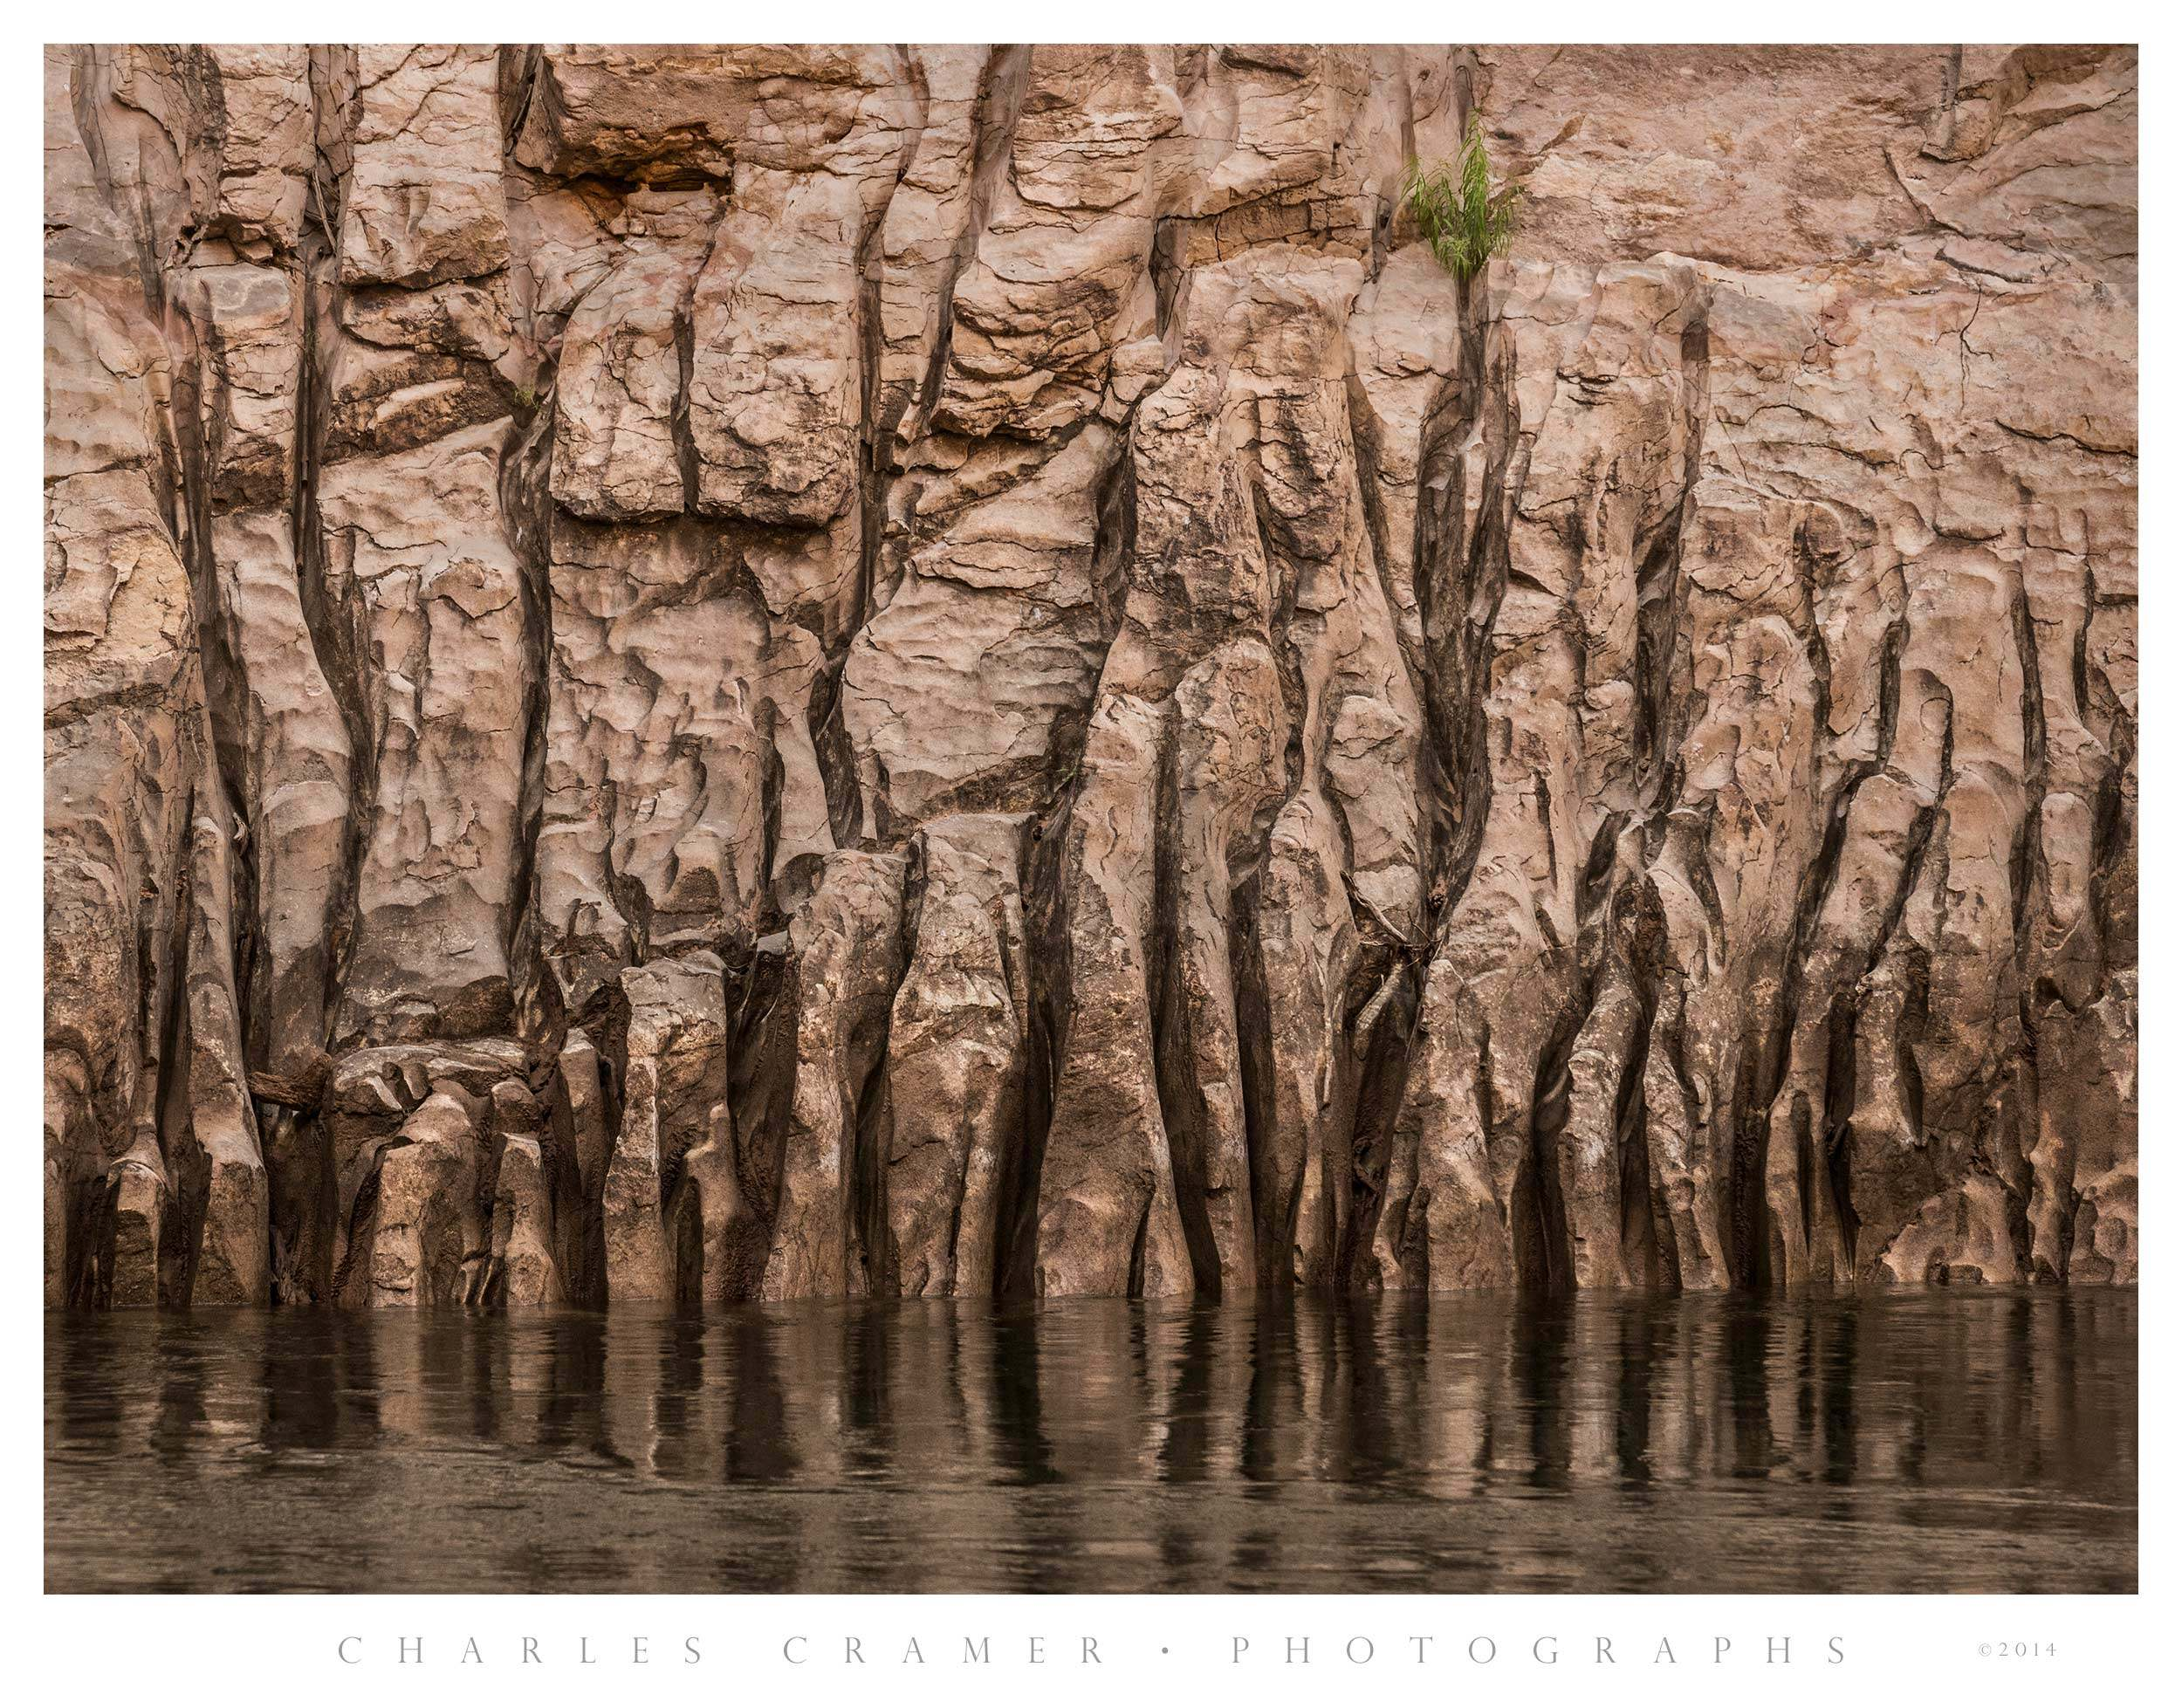 Striations in Canyon Wall, Colorado River, Grand Canyon